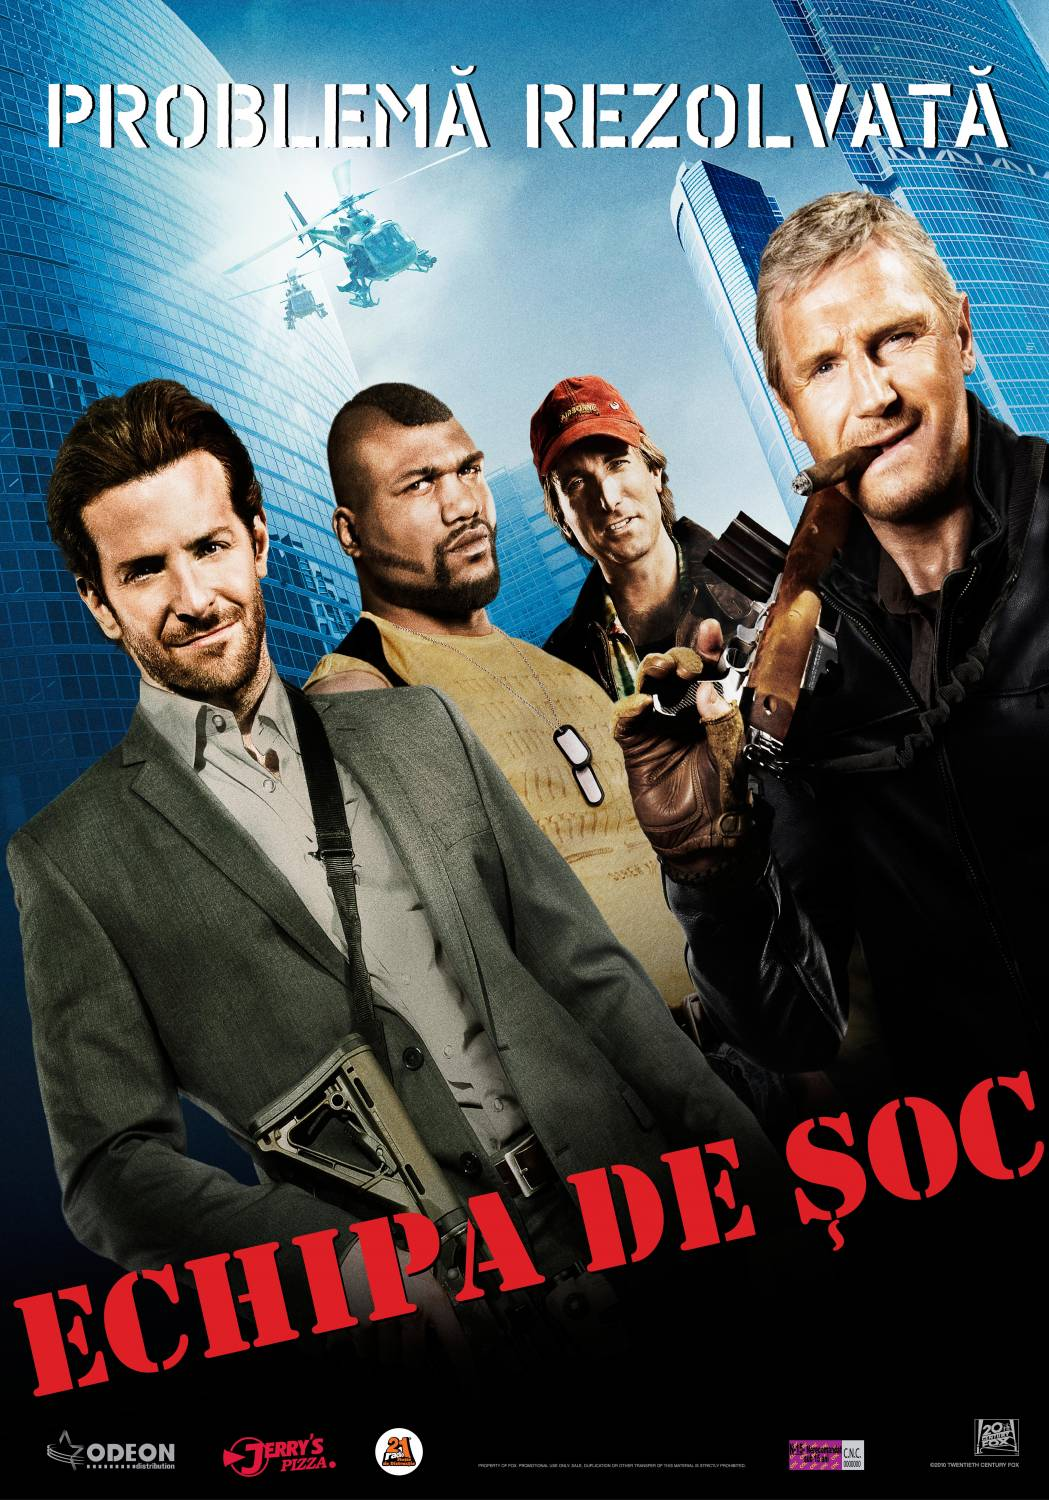 The A-Team (2010) Echipa de şoc - Film Online Subtitrat